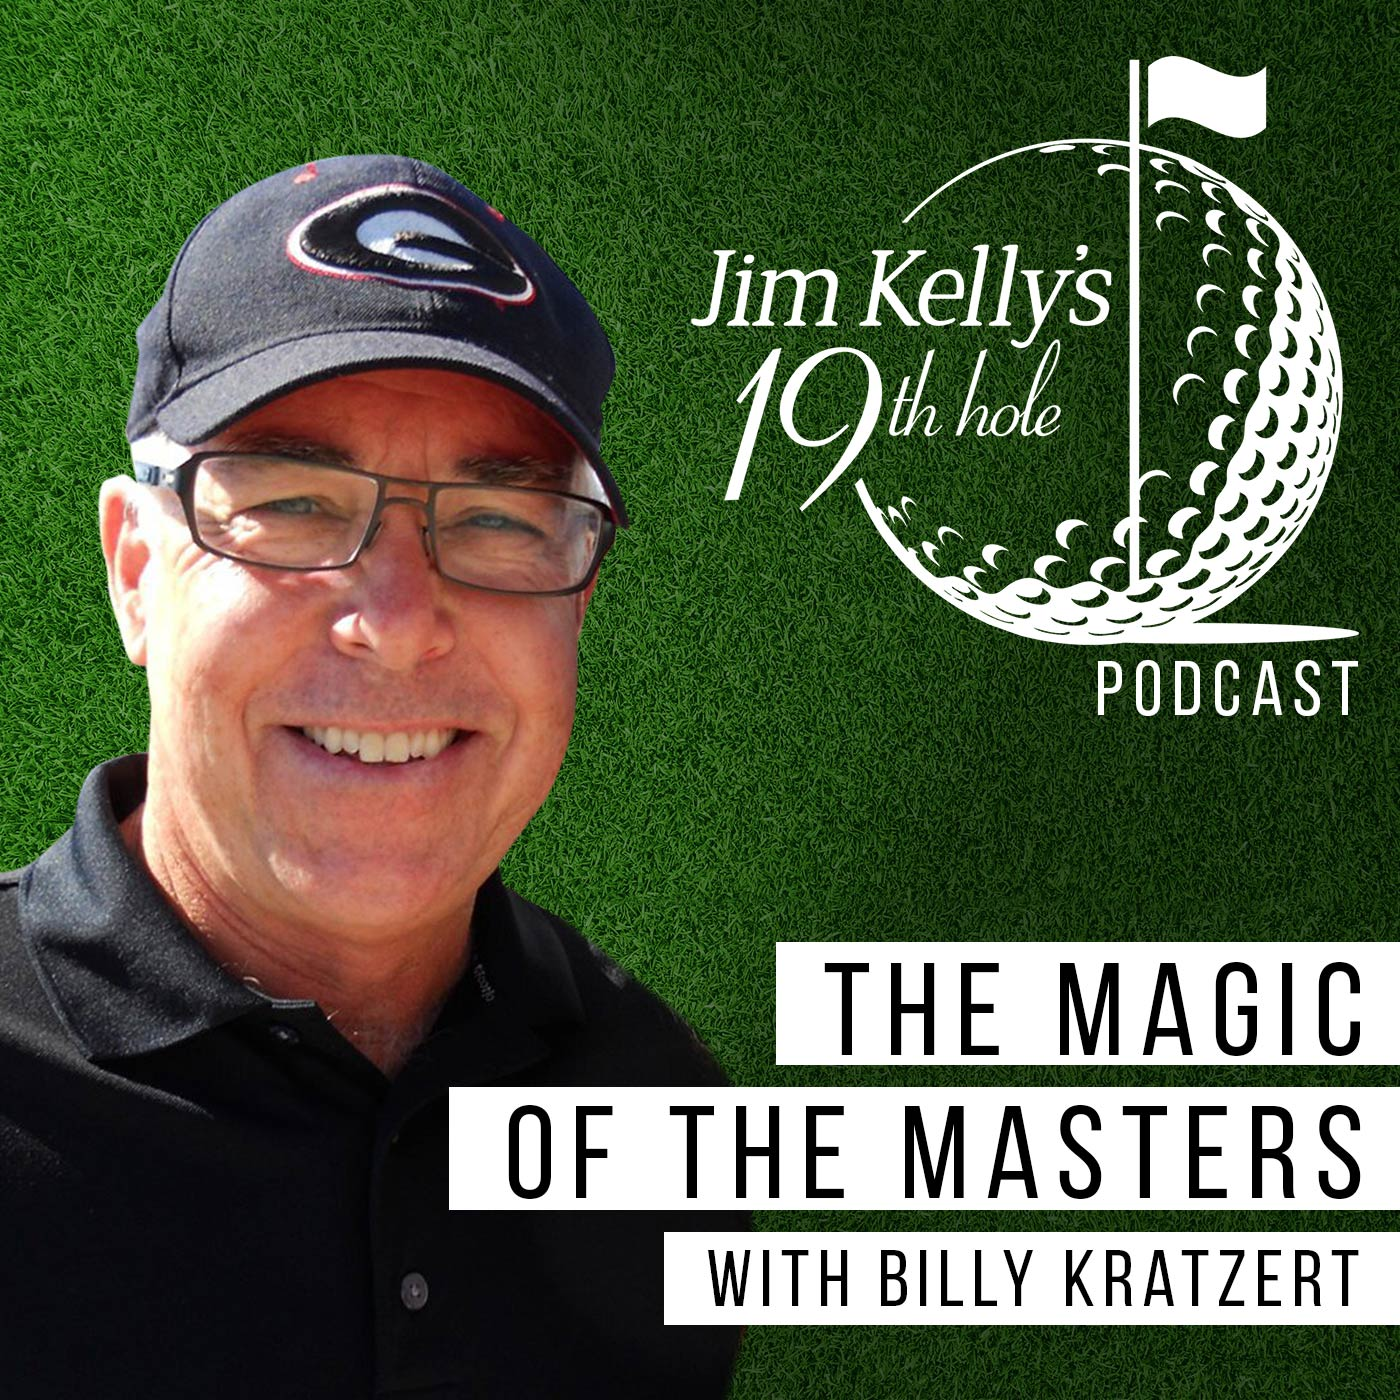 Golf Analyst and Player, Charlie Rymer - Episode 4